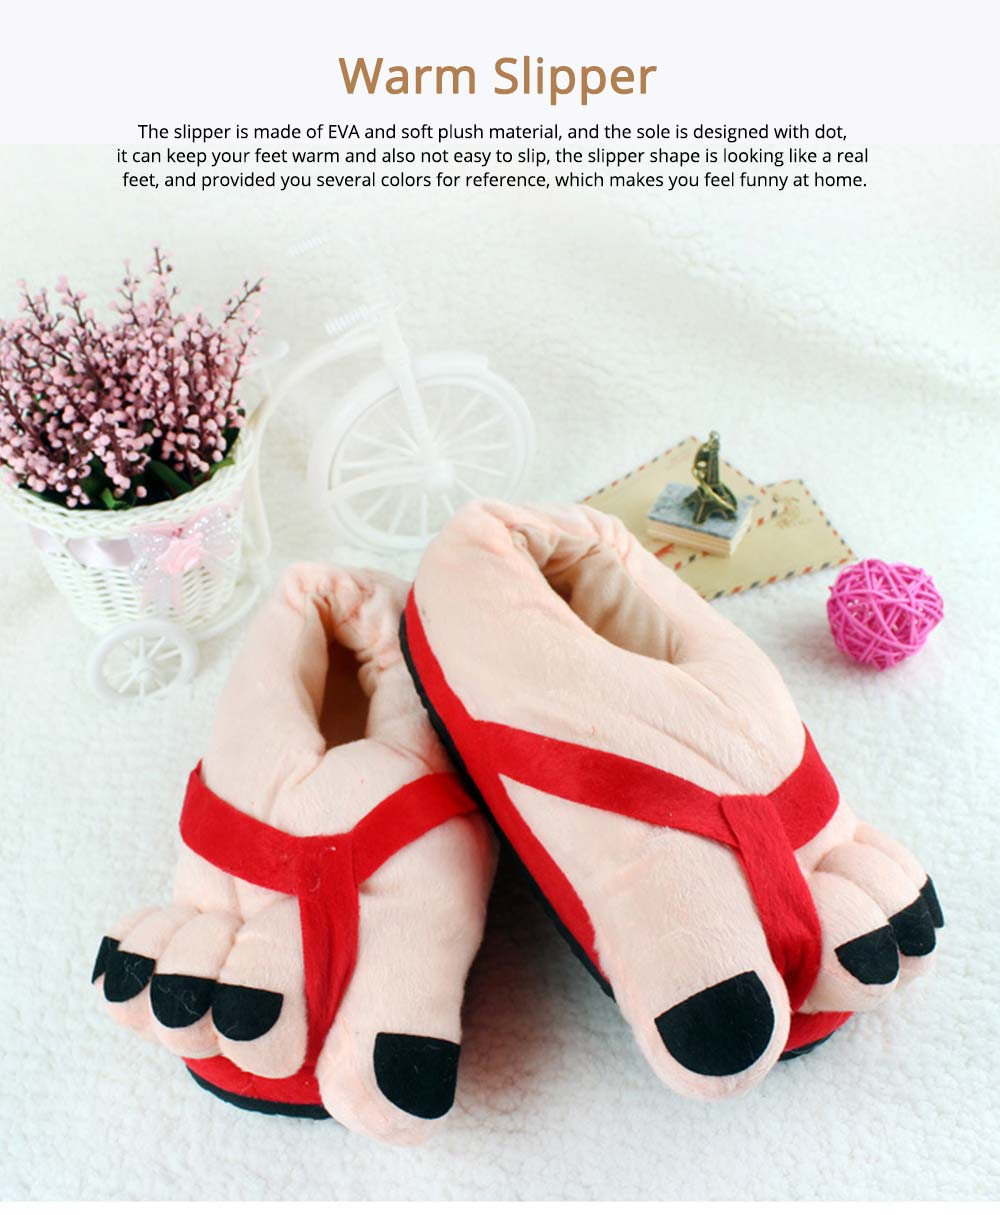 Warm Slipper Feet Shape April Fool's Day Gift for Boy Girl, Plush Material Comfortable Slipper Winter 0